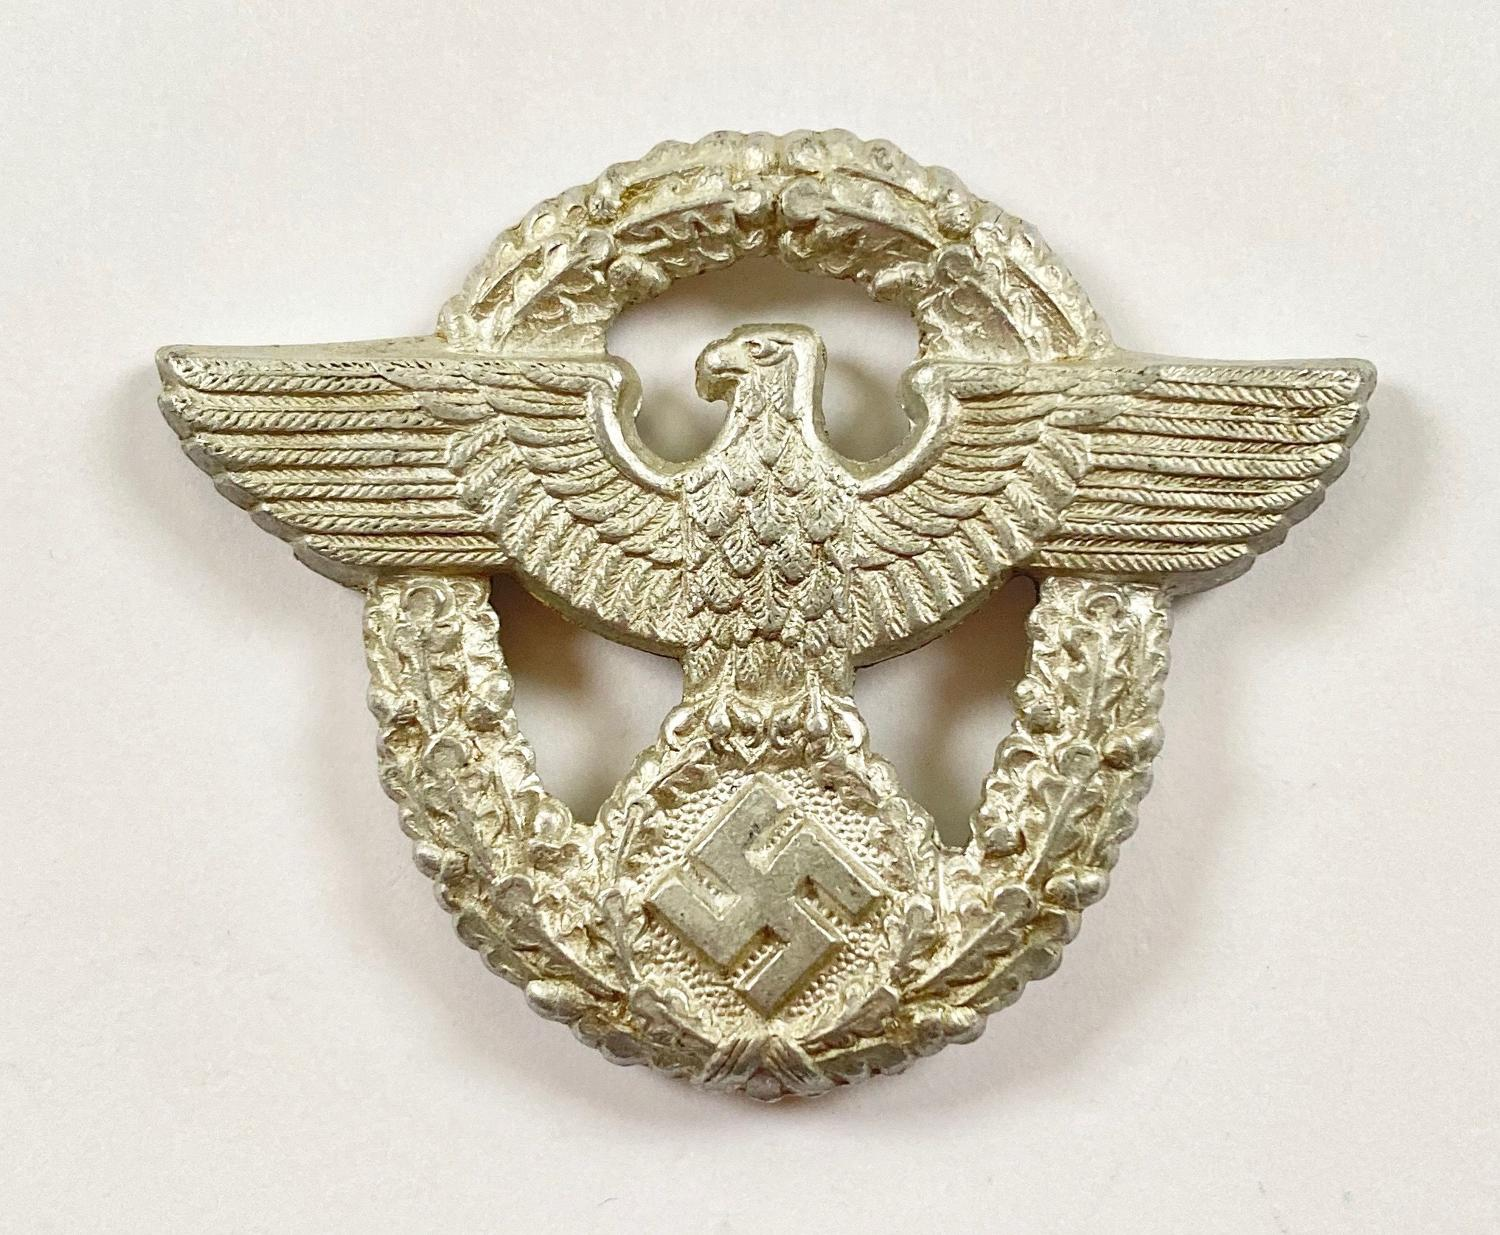 WW2 German Police Alloy Cap Badge.